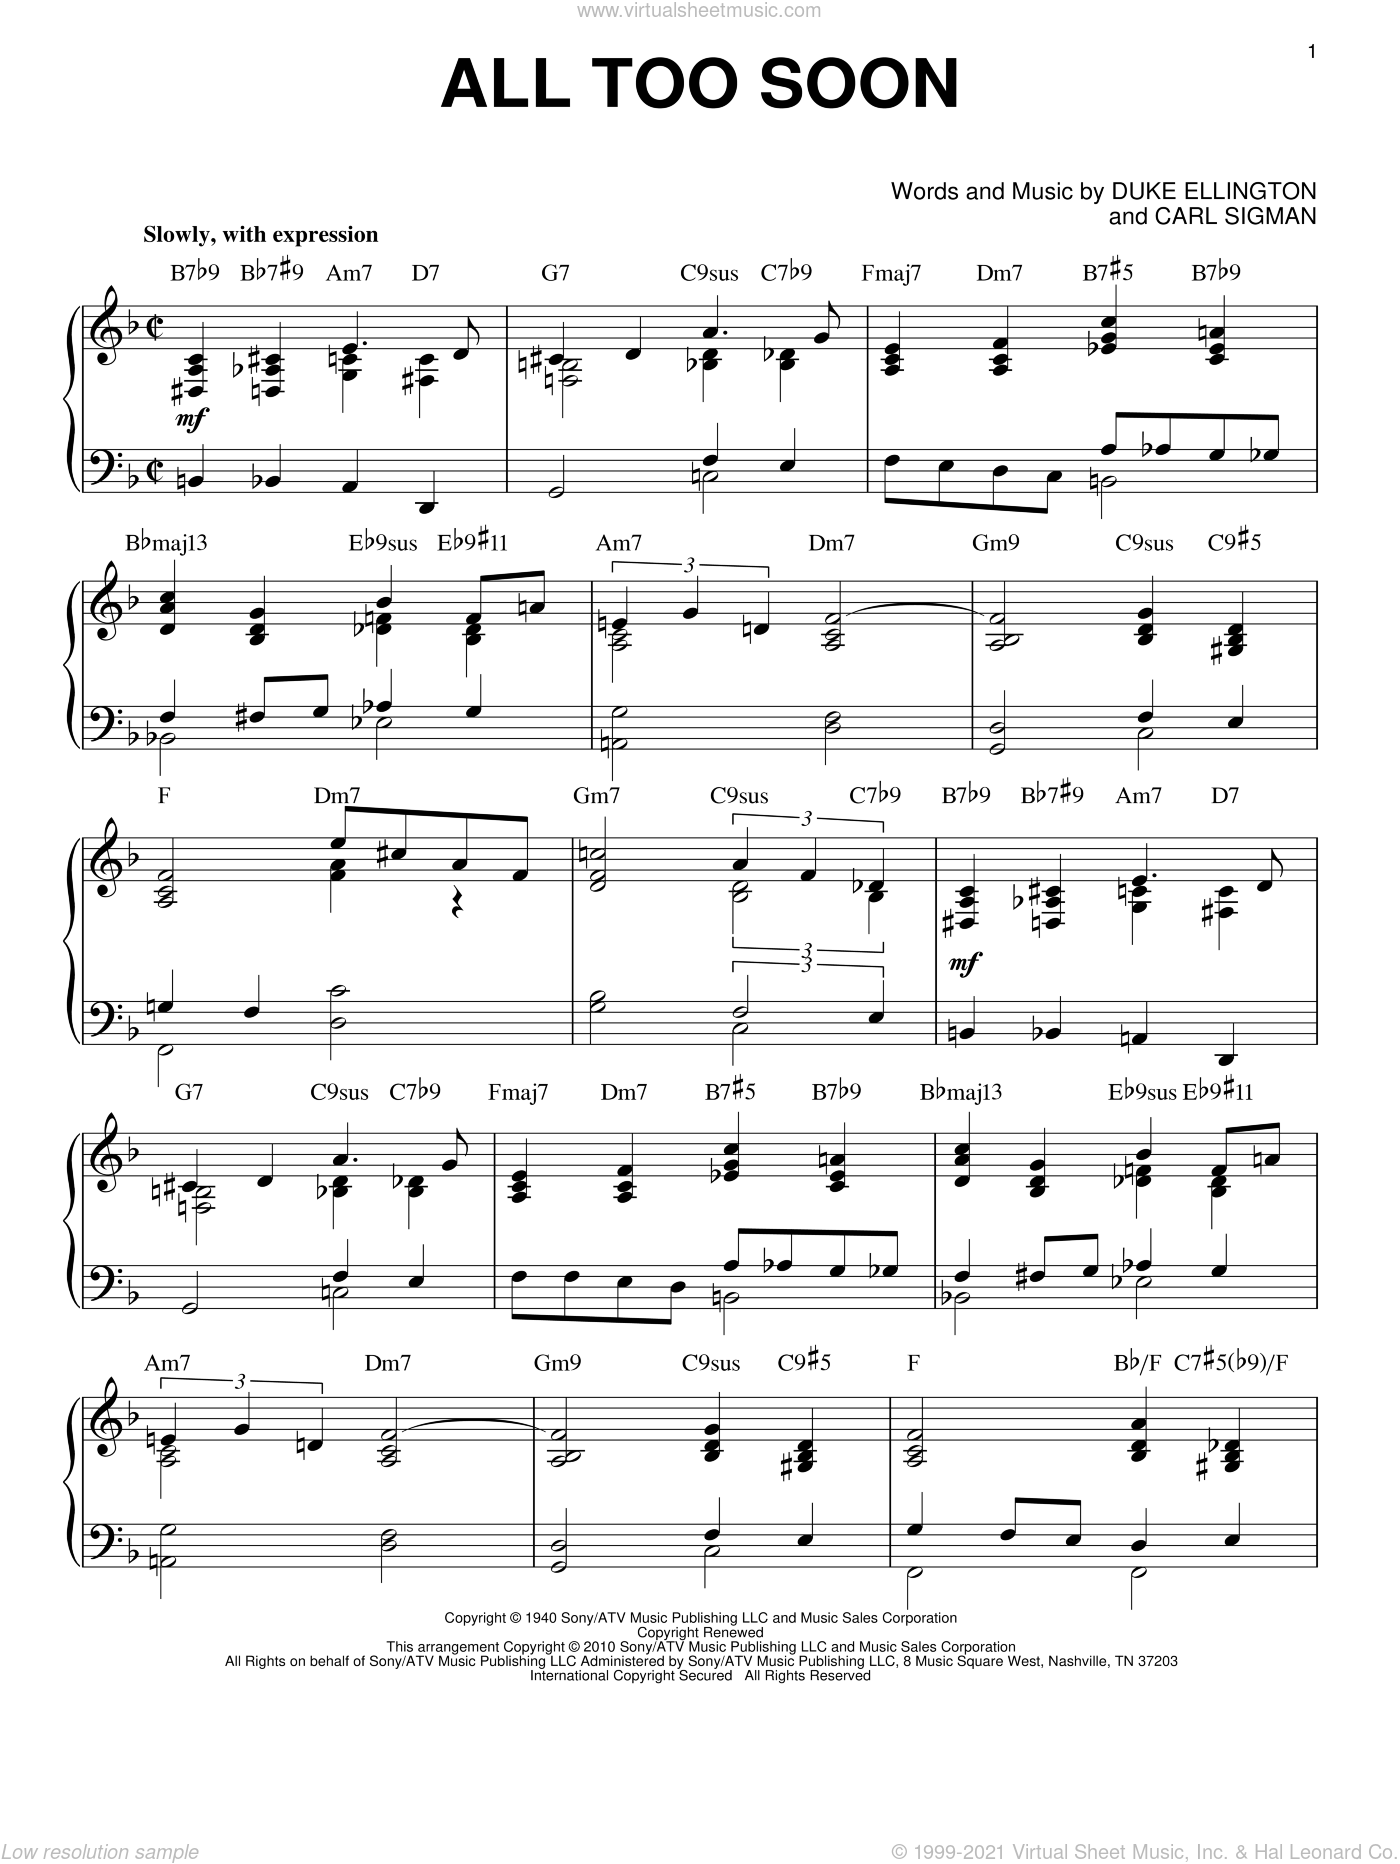 All Too Soon sheet music for piano solo by Carl Sigman